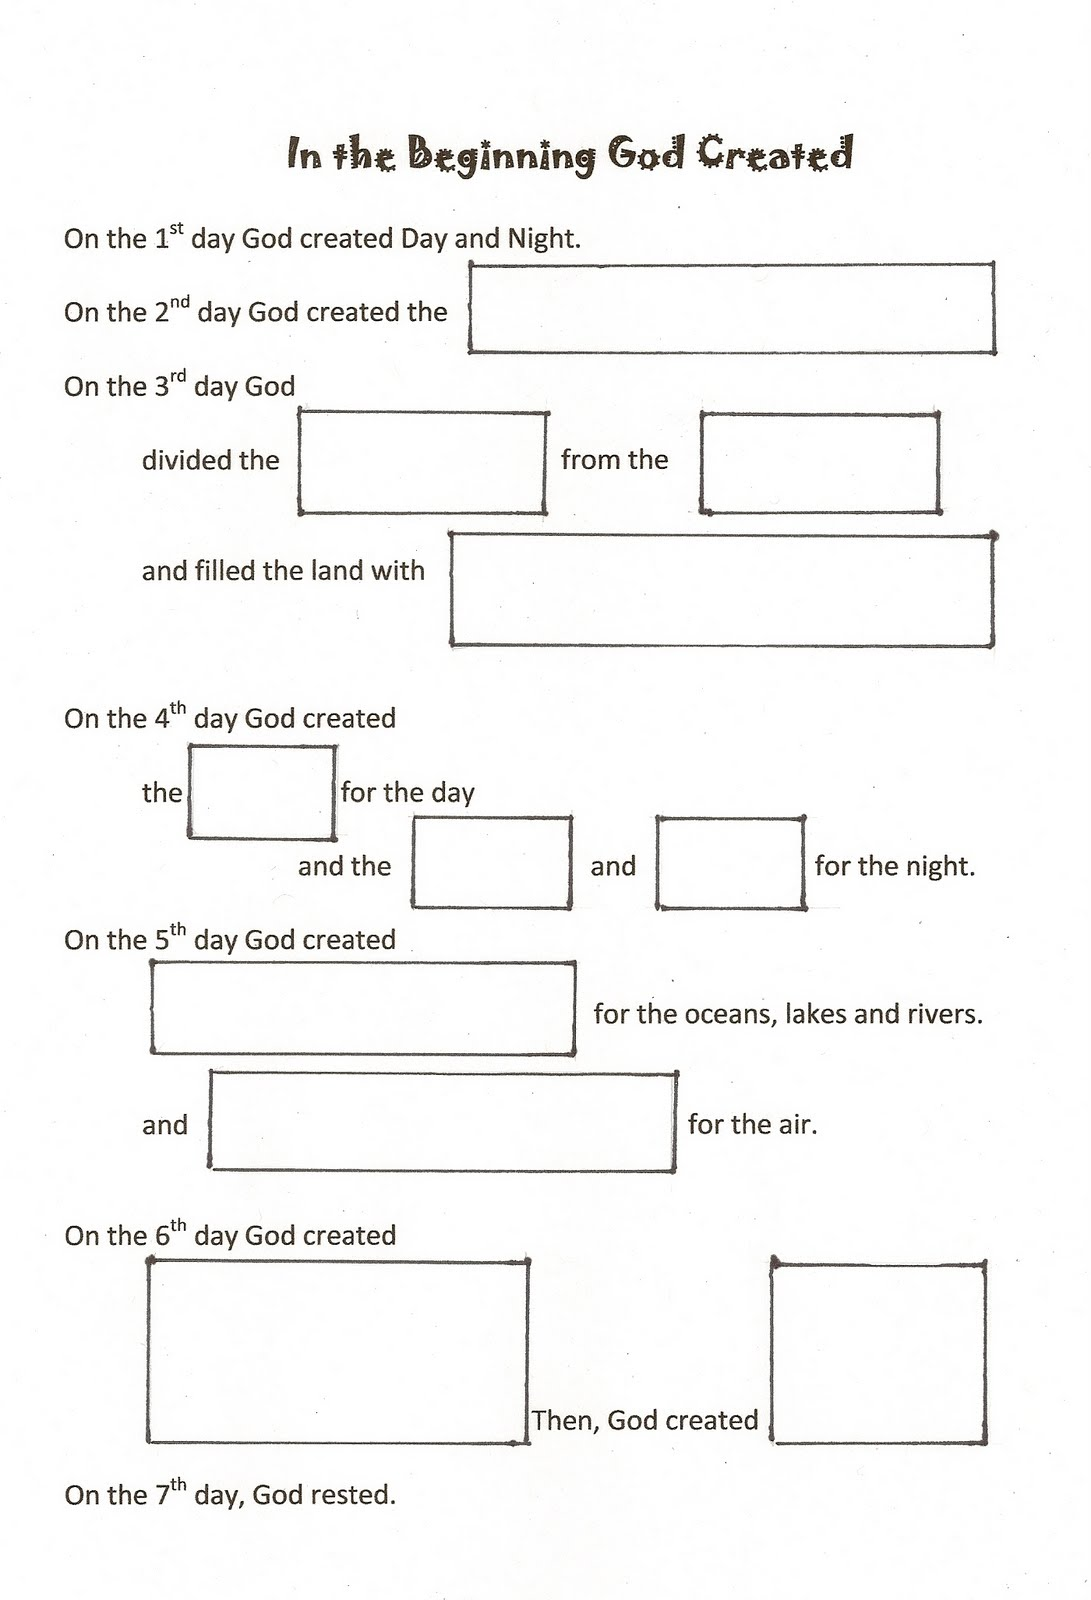 Workbooks longitude and latitude worksheets 6th grade : First Communion Worksheets Free Worksheets Library | Download and ...